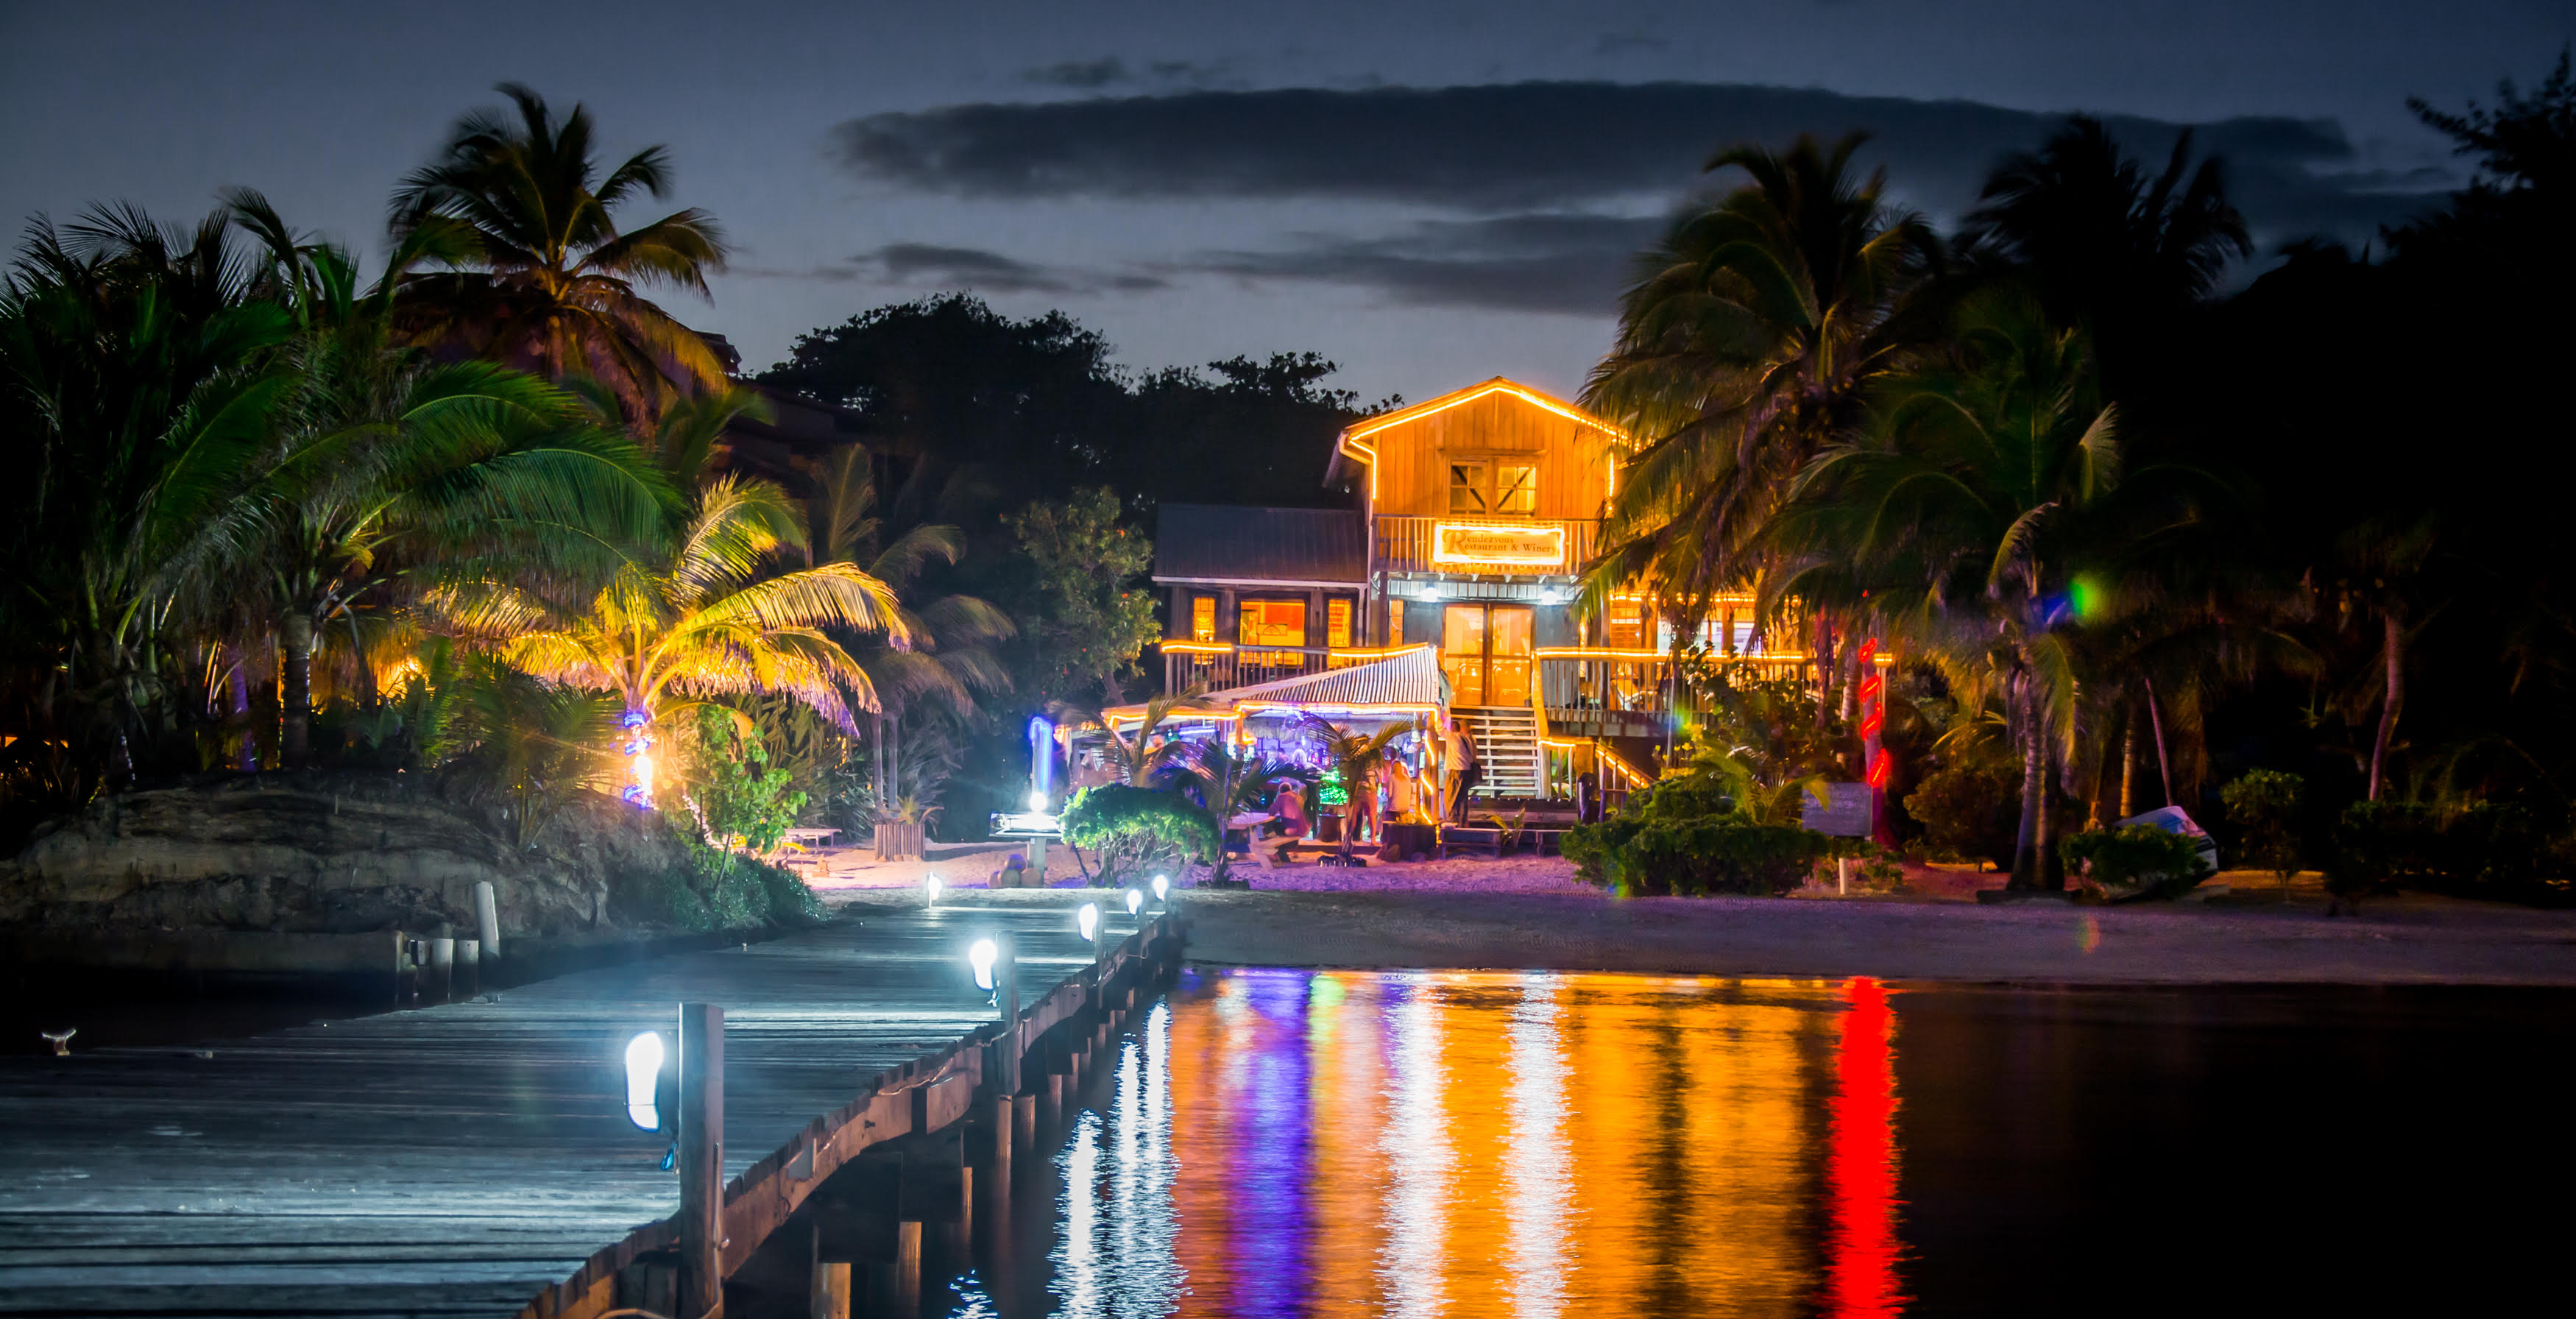 Rendezvous Bistro Winery Gourmet Fine Dining Thai French Ambergris Caye Belize